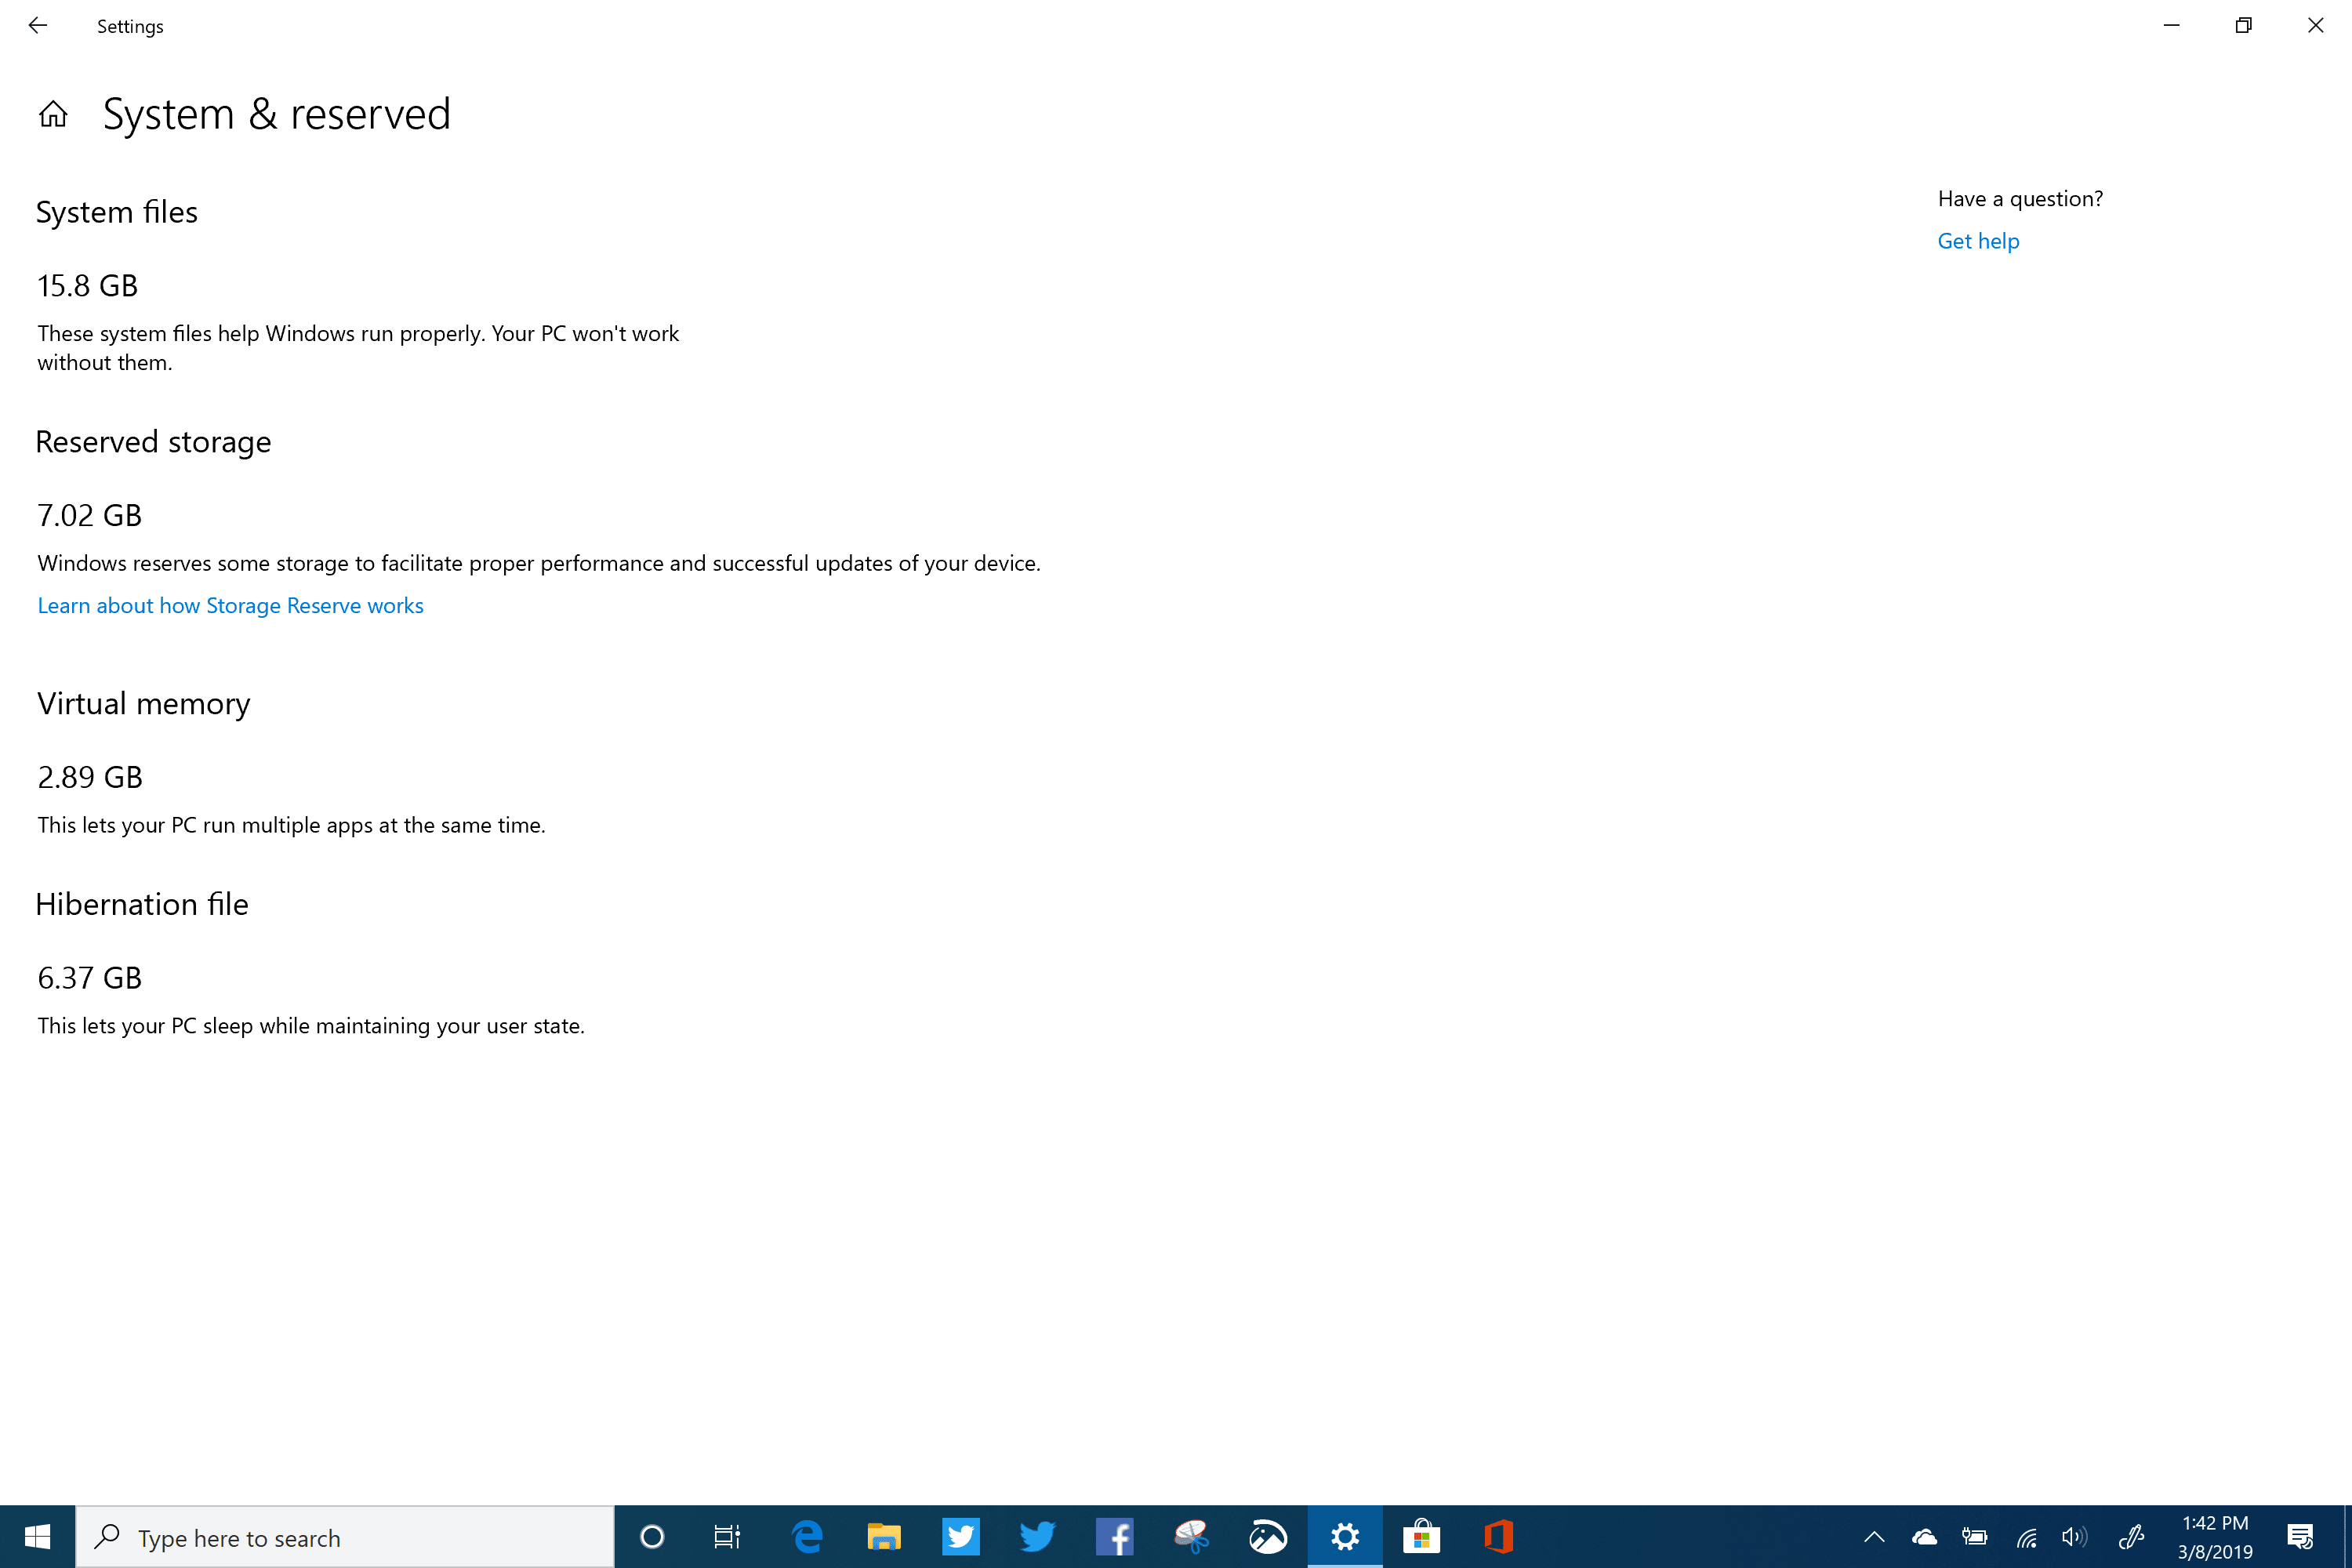 Windows 10 Reserved Storage Build 18353 (19H1) - Surface Book